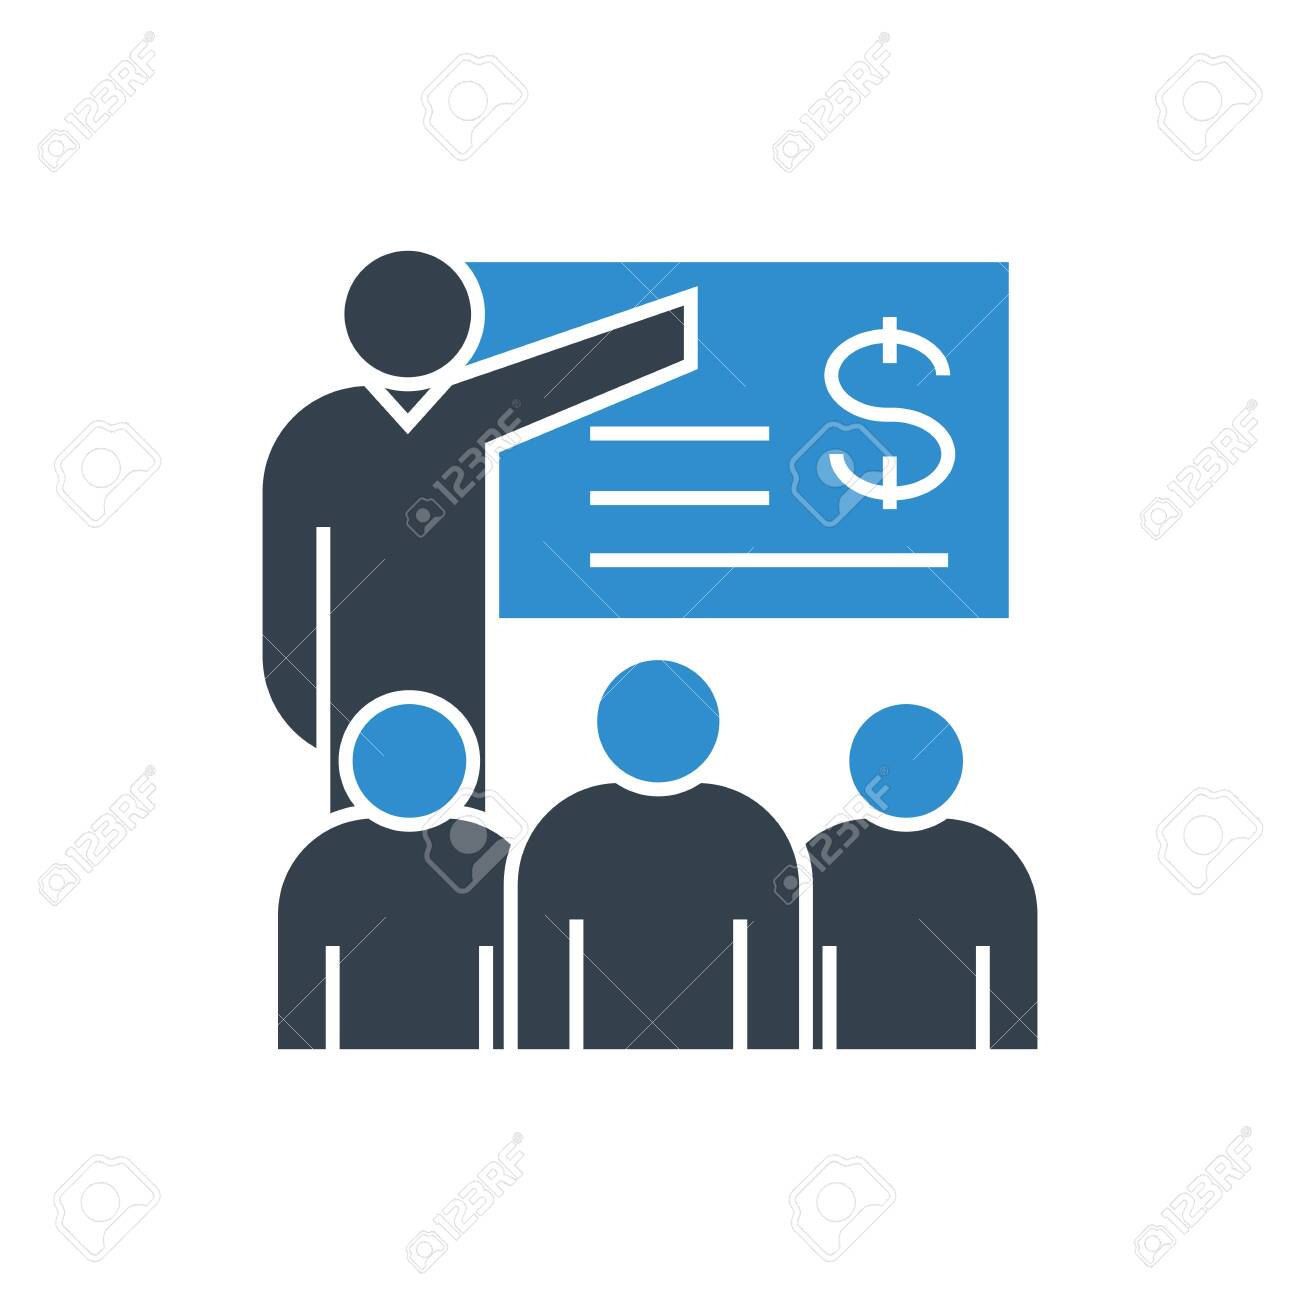 financial training concept icon - 122803169